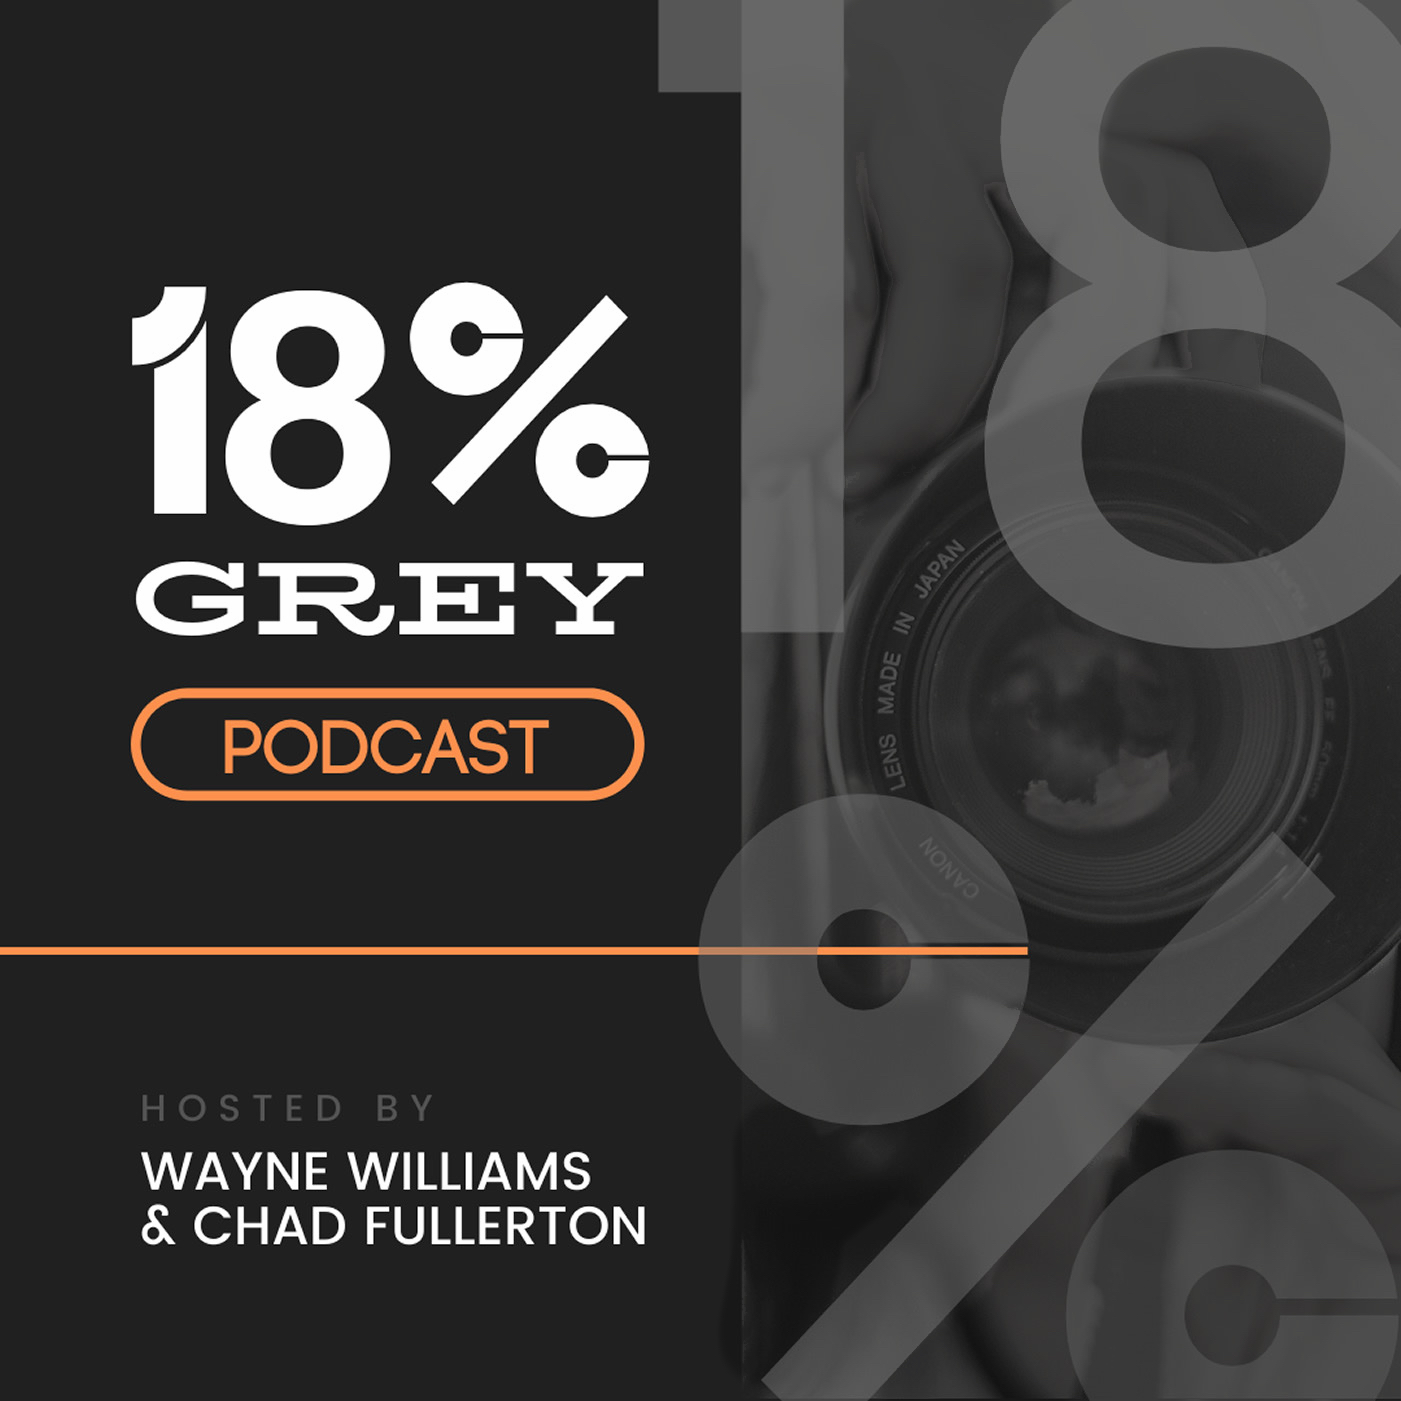 Artwork for 001: Welcome to The 18% Grey Podcast, plus news about the Canon R5!